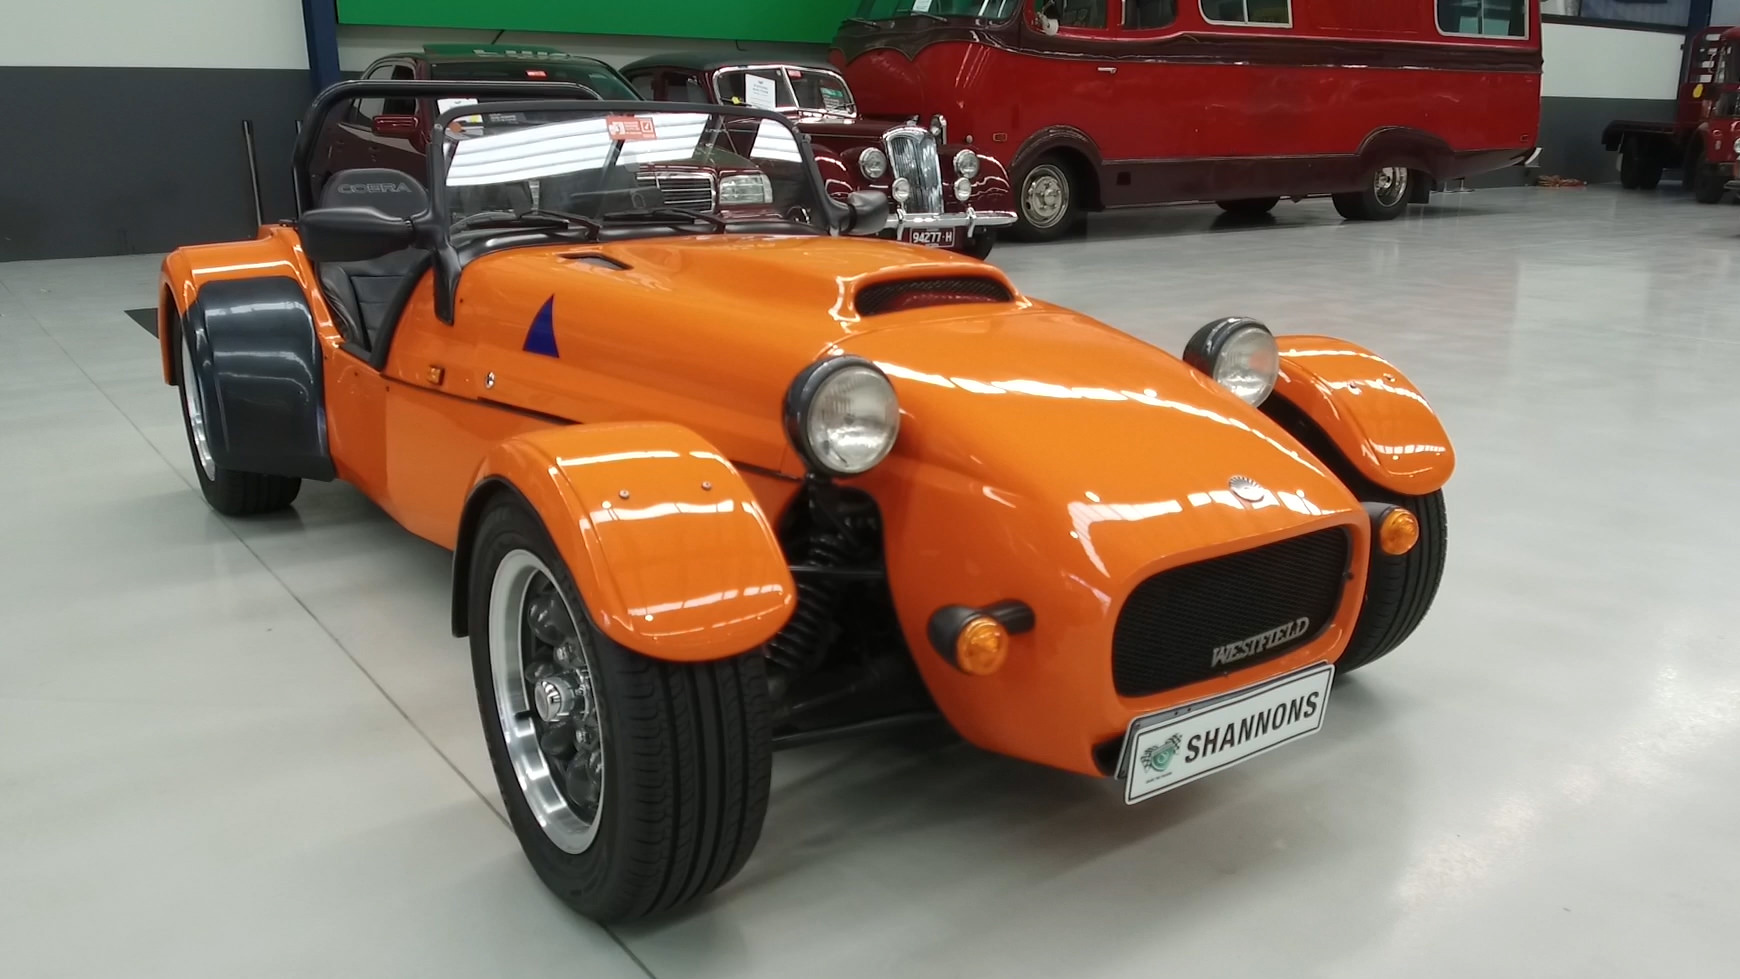 2006 Westfield Clubman SE 'Nissan Twin Cam Engine' - 2021 Shannons Autumn Timed Online Auction